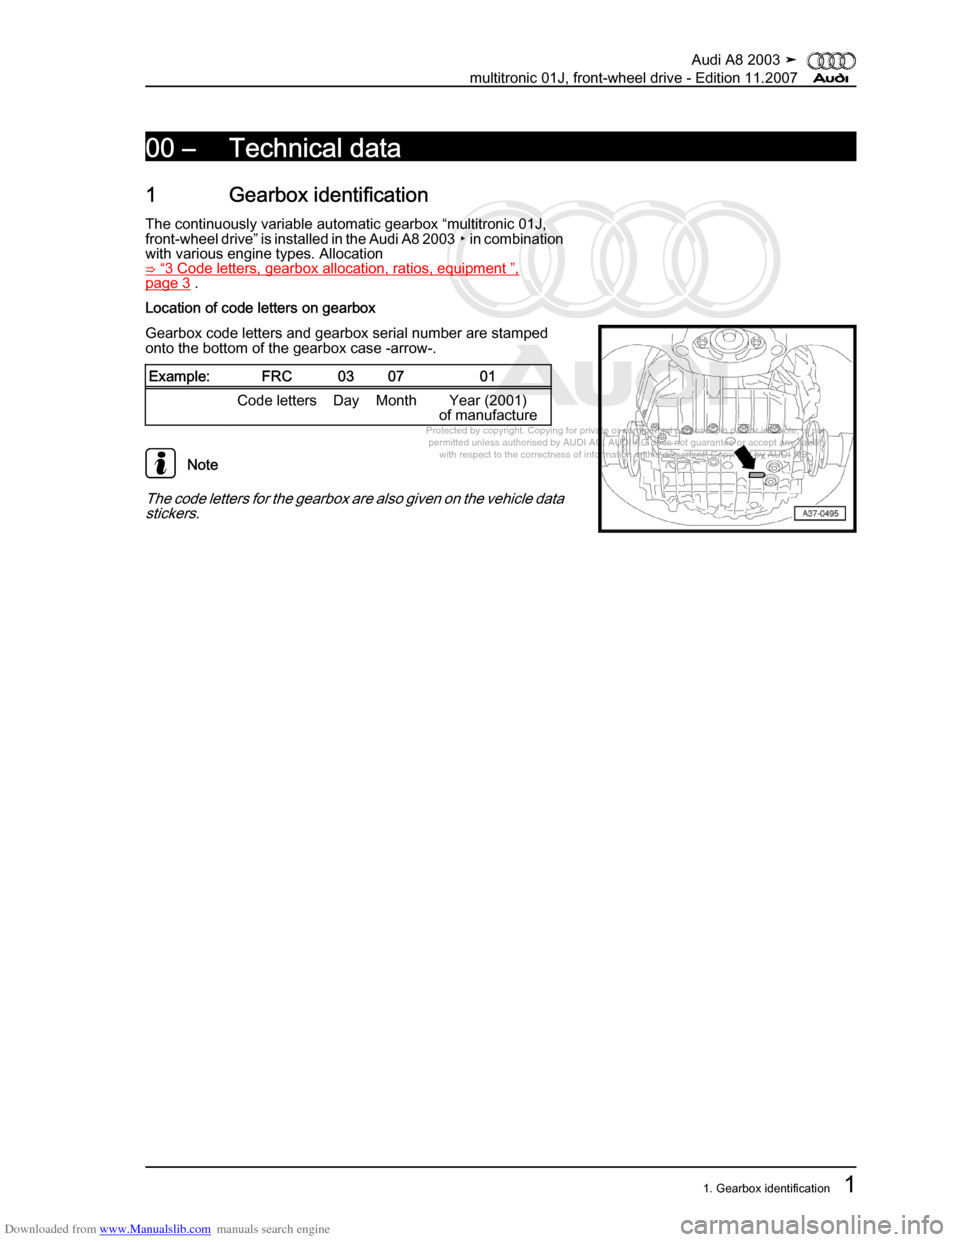 AUDI A8 2003 D3 / 2.G Multitronic System Workshop Manual, Page 5